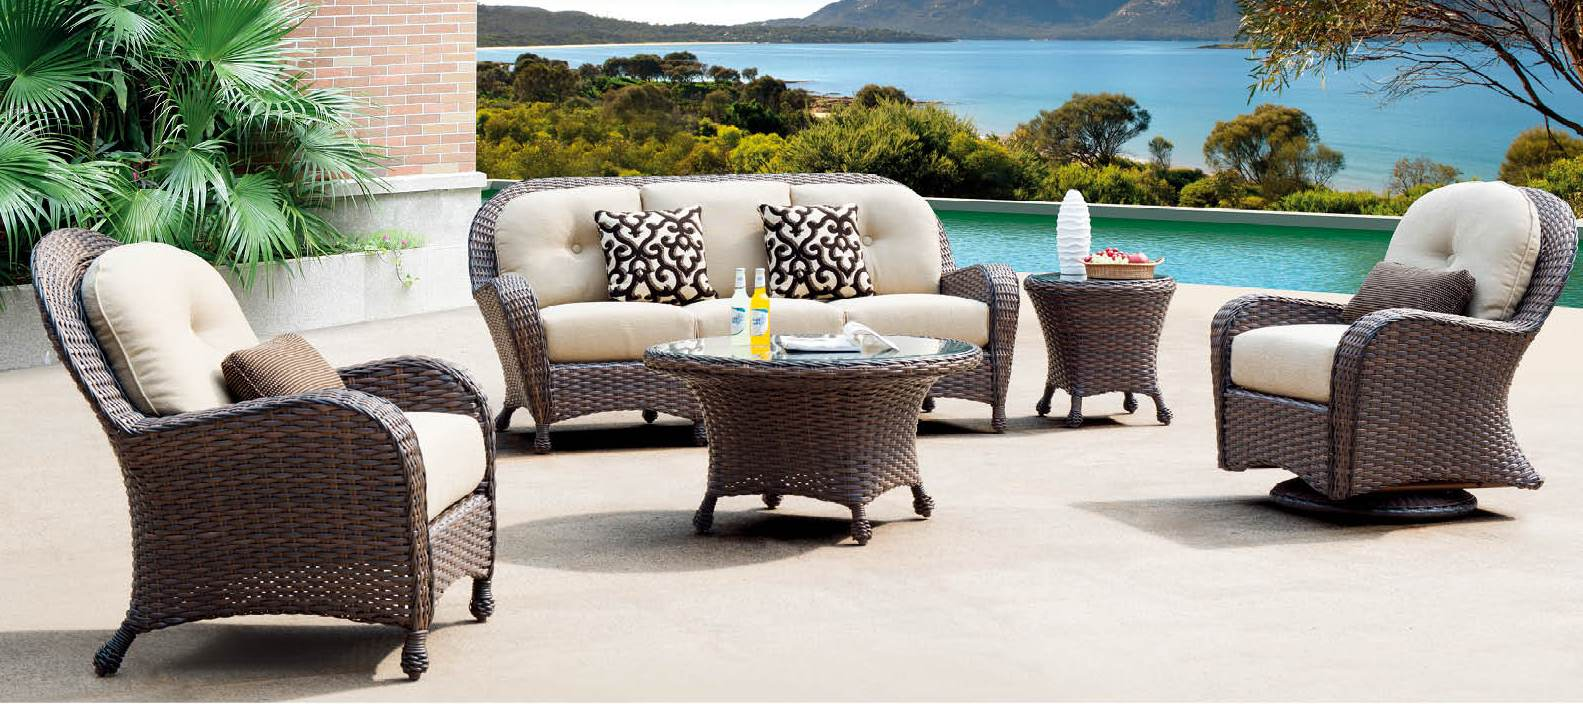 Timeless Classic Series Wicker Outdoor Furniture Palm